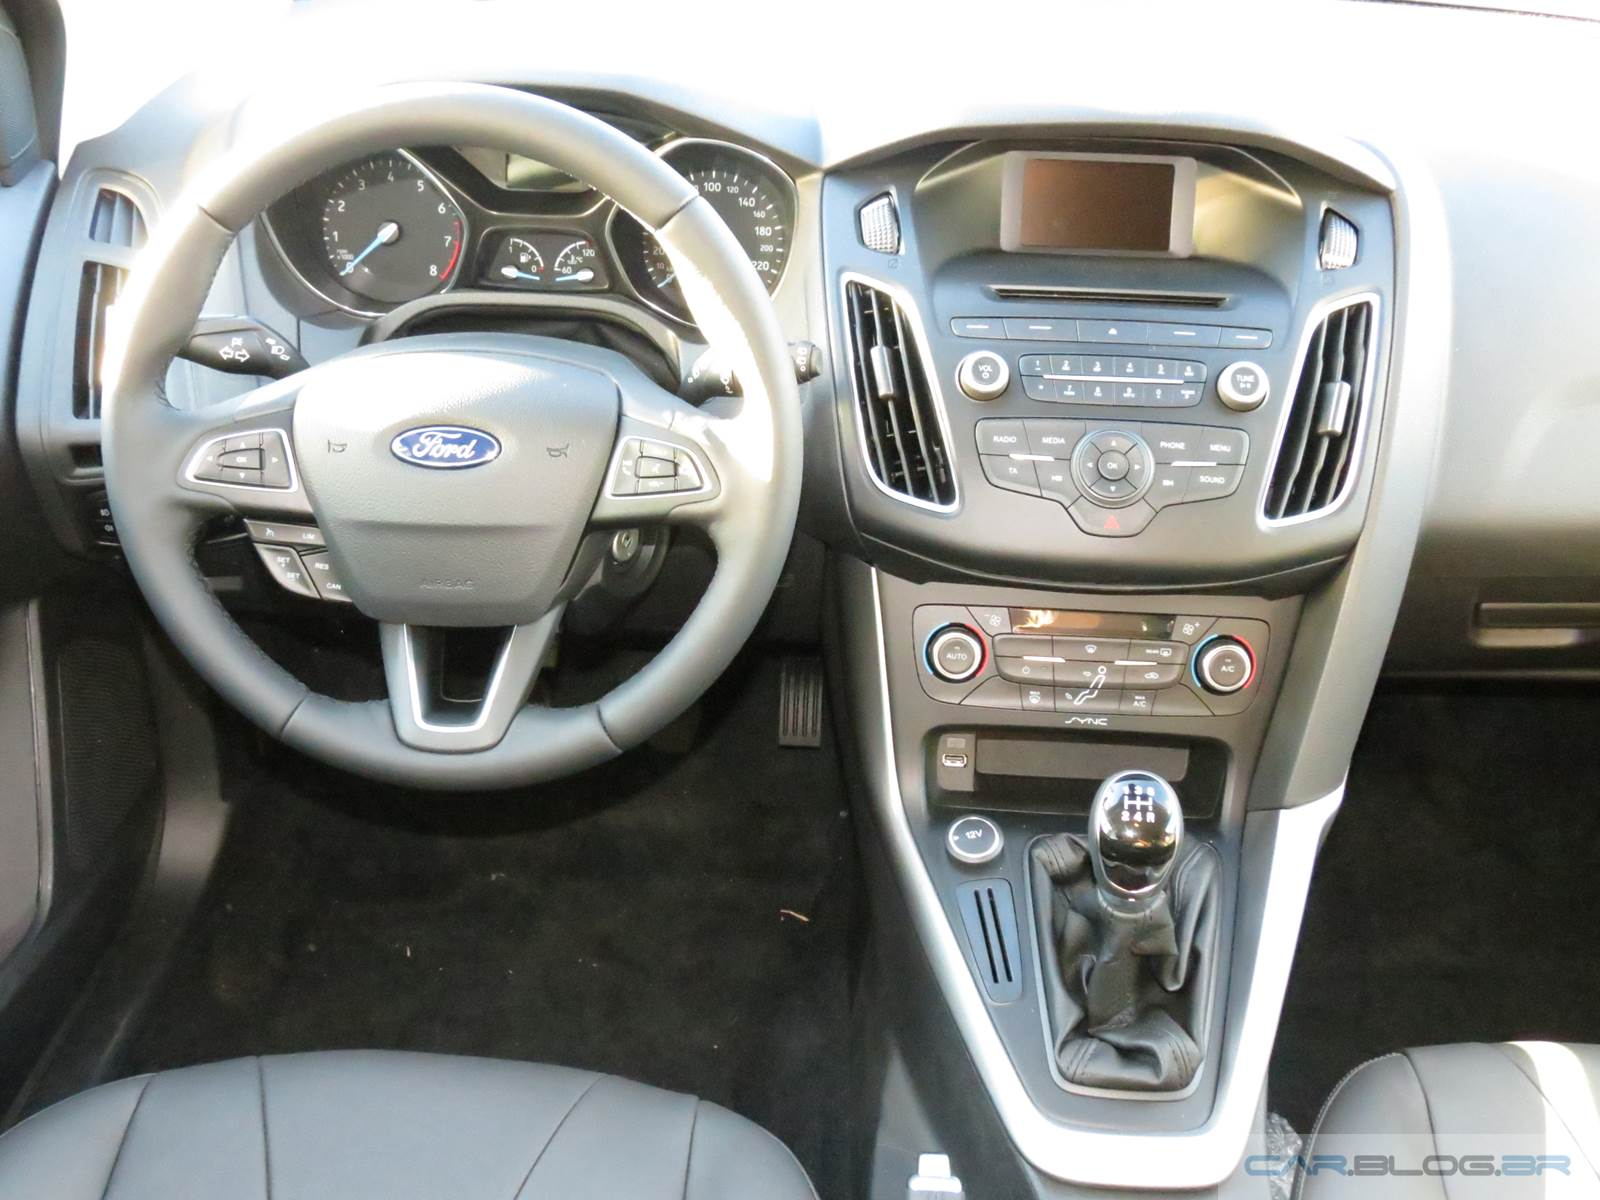 Ford Focus 1.6 MT - painel